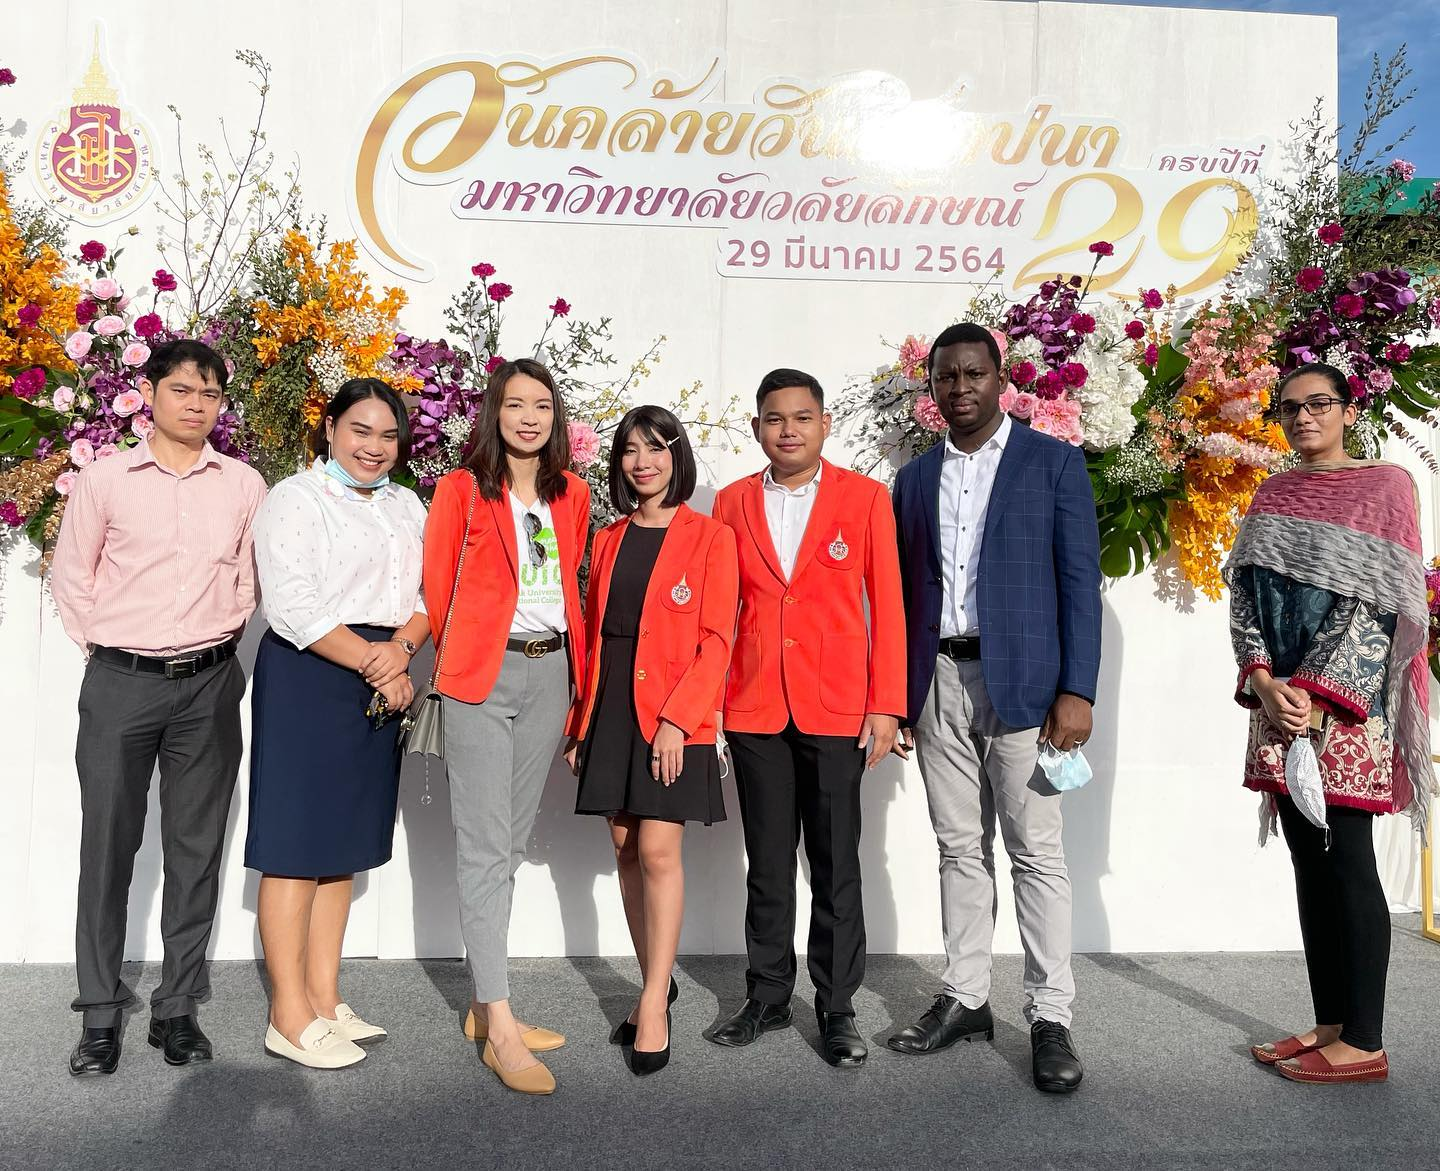 Celebrating ceremony of the 29th Anniversary